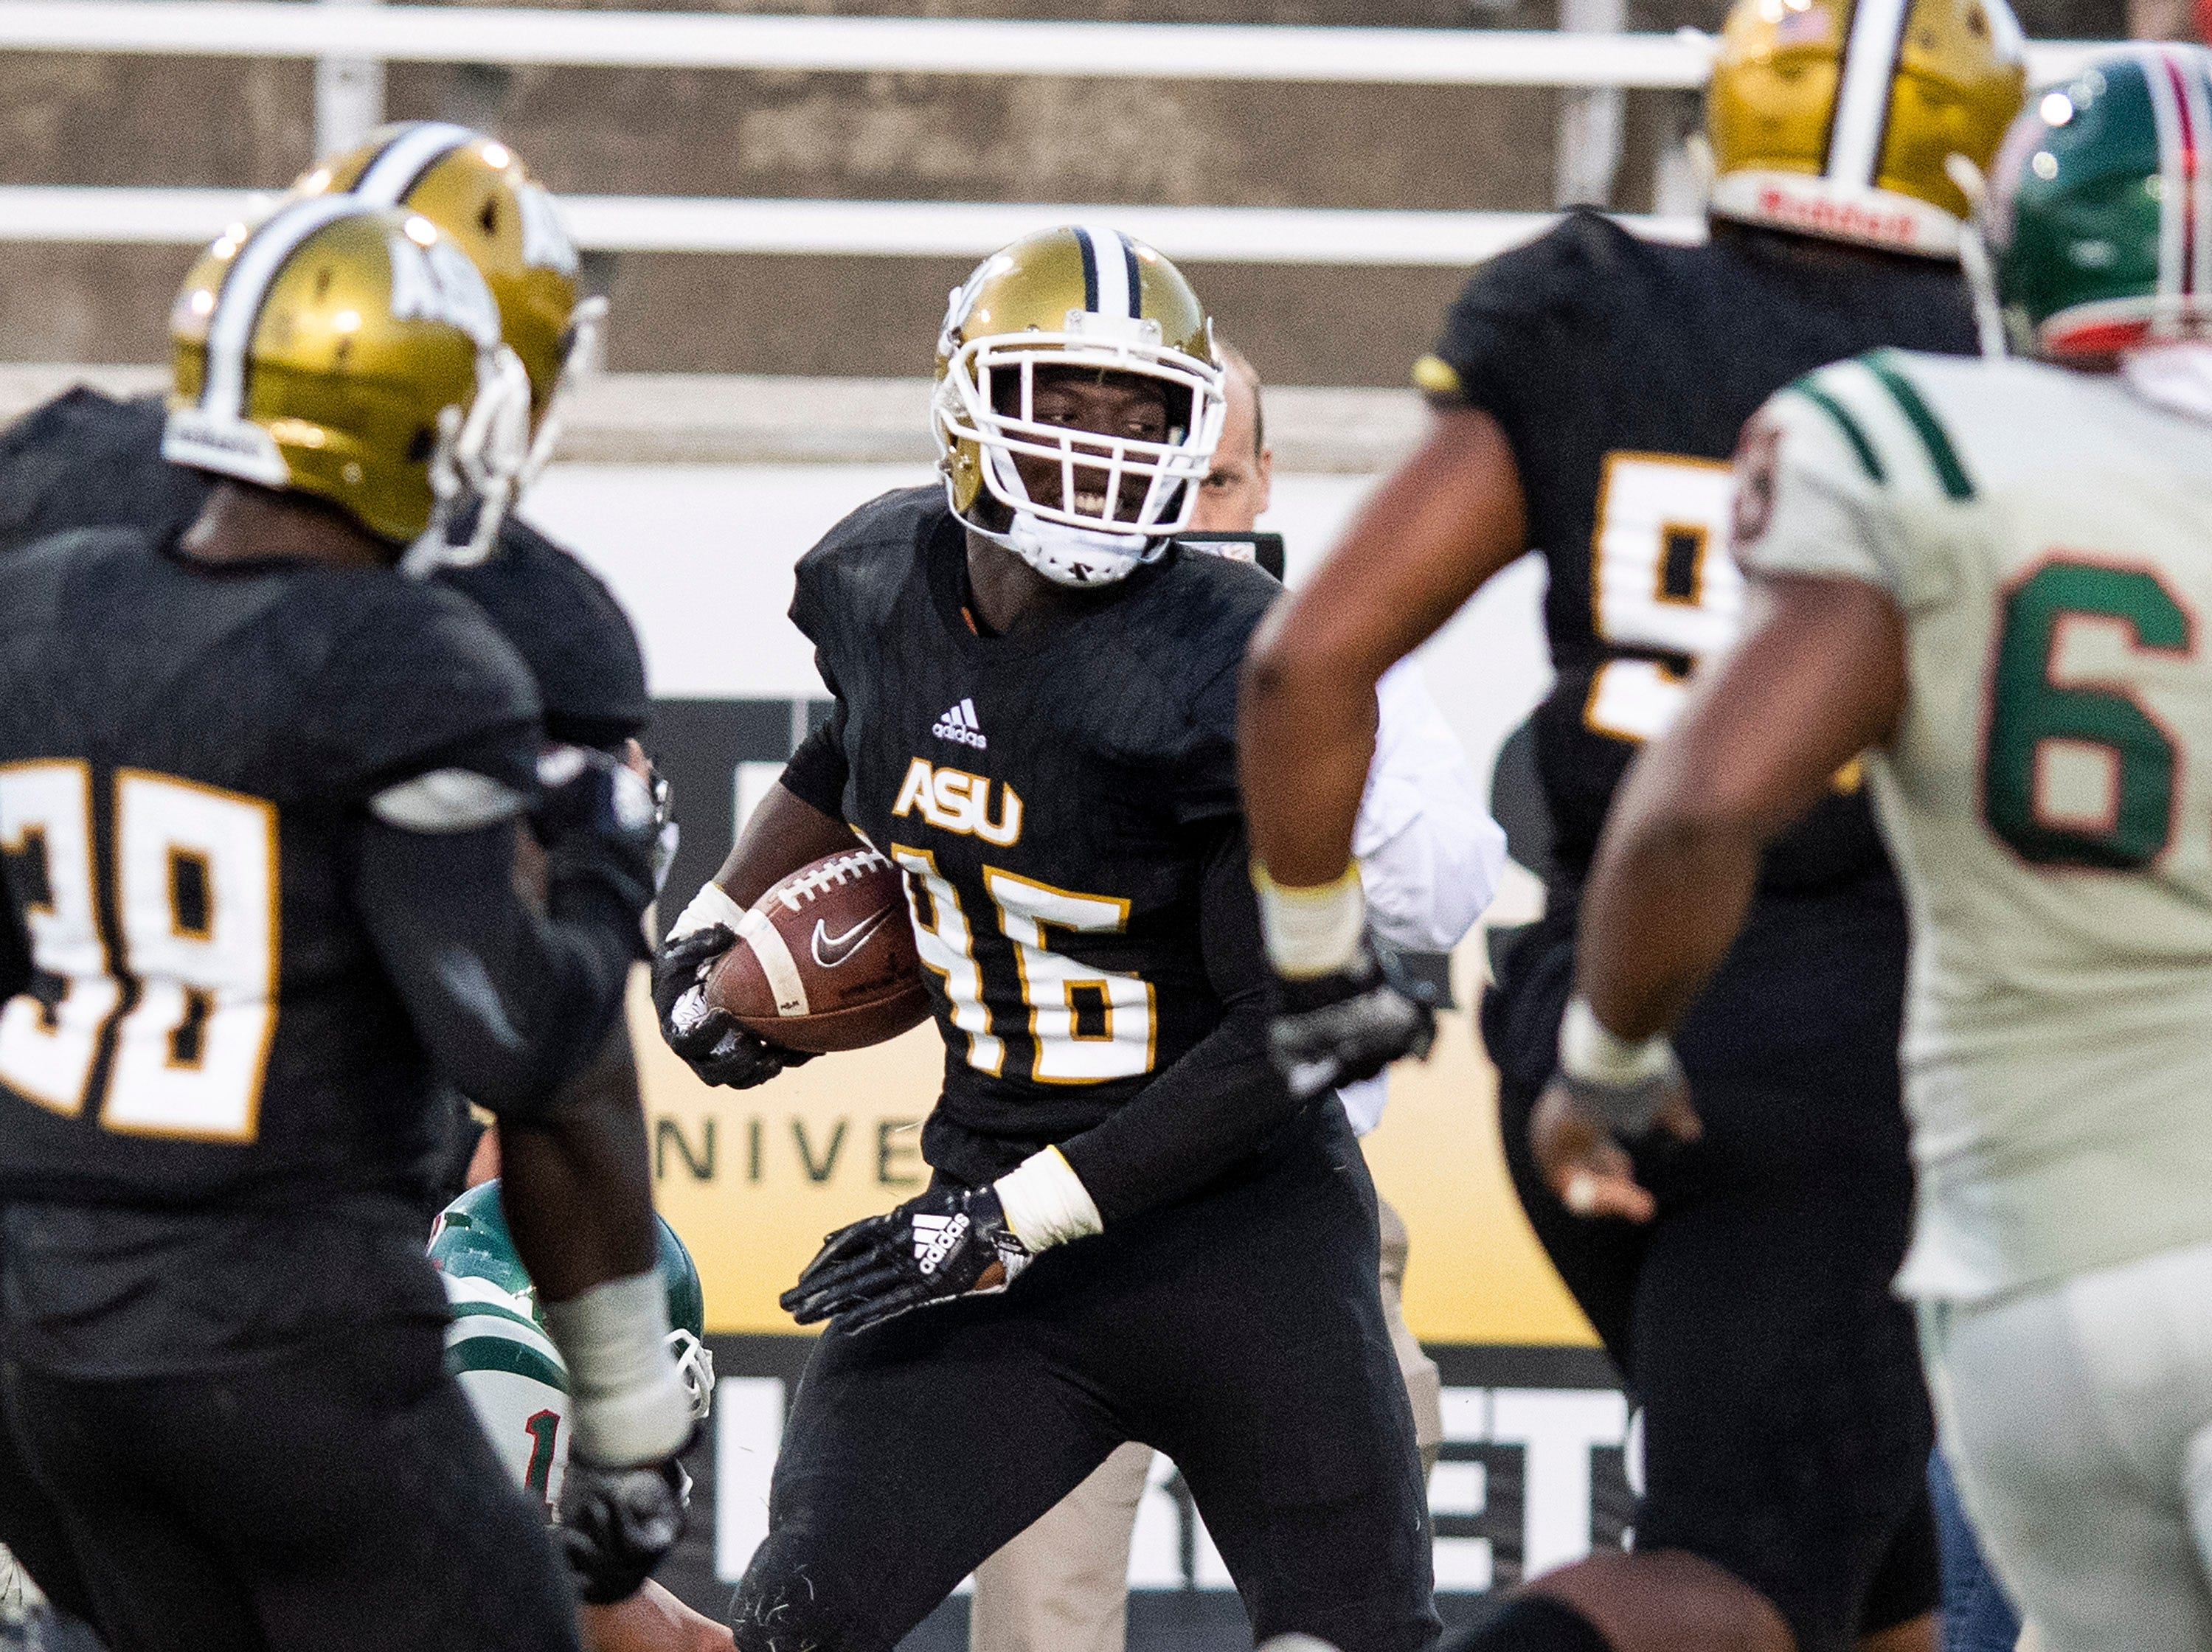 Alabama State University defensive lineman J'Lan Carson (96) intercepts a pass against Mississippi Valley State in the Turkey Day Classic at Hornet Stadium on the ASU campus in Montgomery, Ala., on Thanksgiving Day, Thursday November 22, 2018.